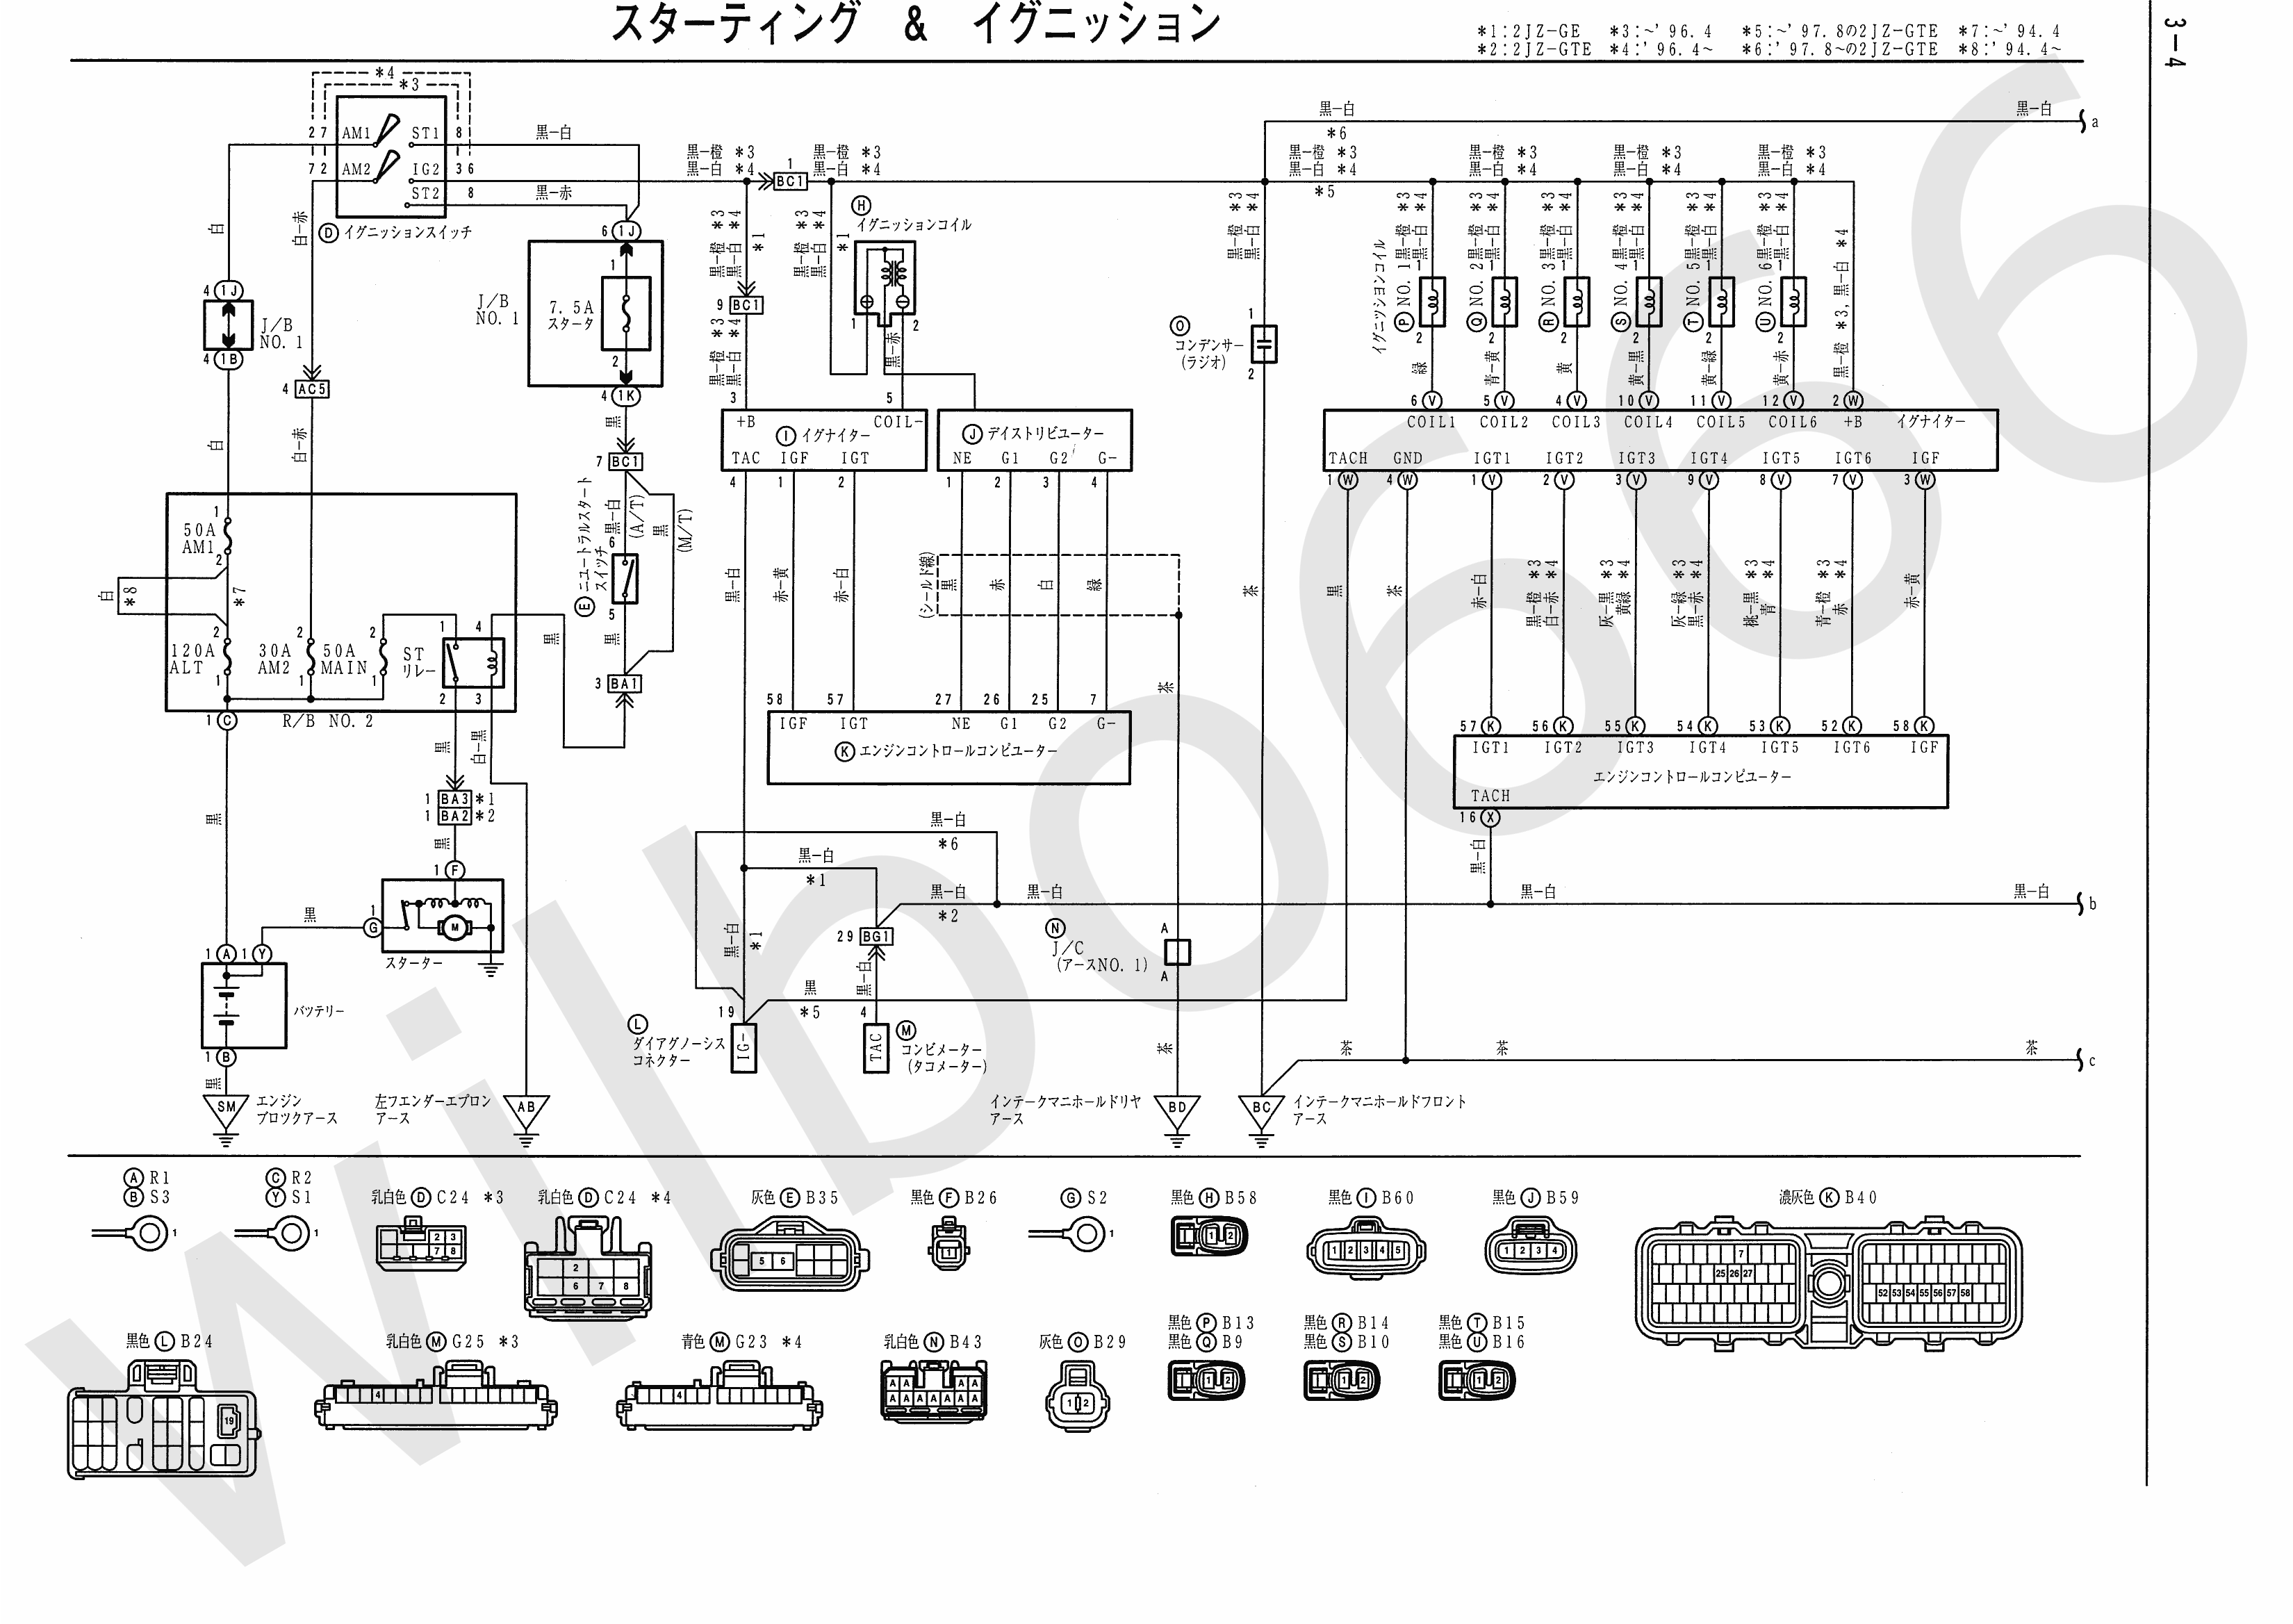 ge washer schematic wiring diagram ge wiring diagram faint repeat20 klictravel nl  ge wiring diagram faint repeat20